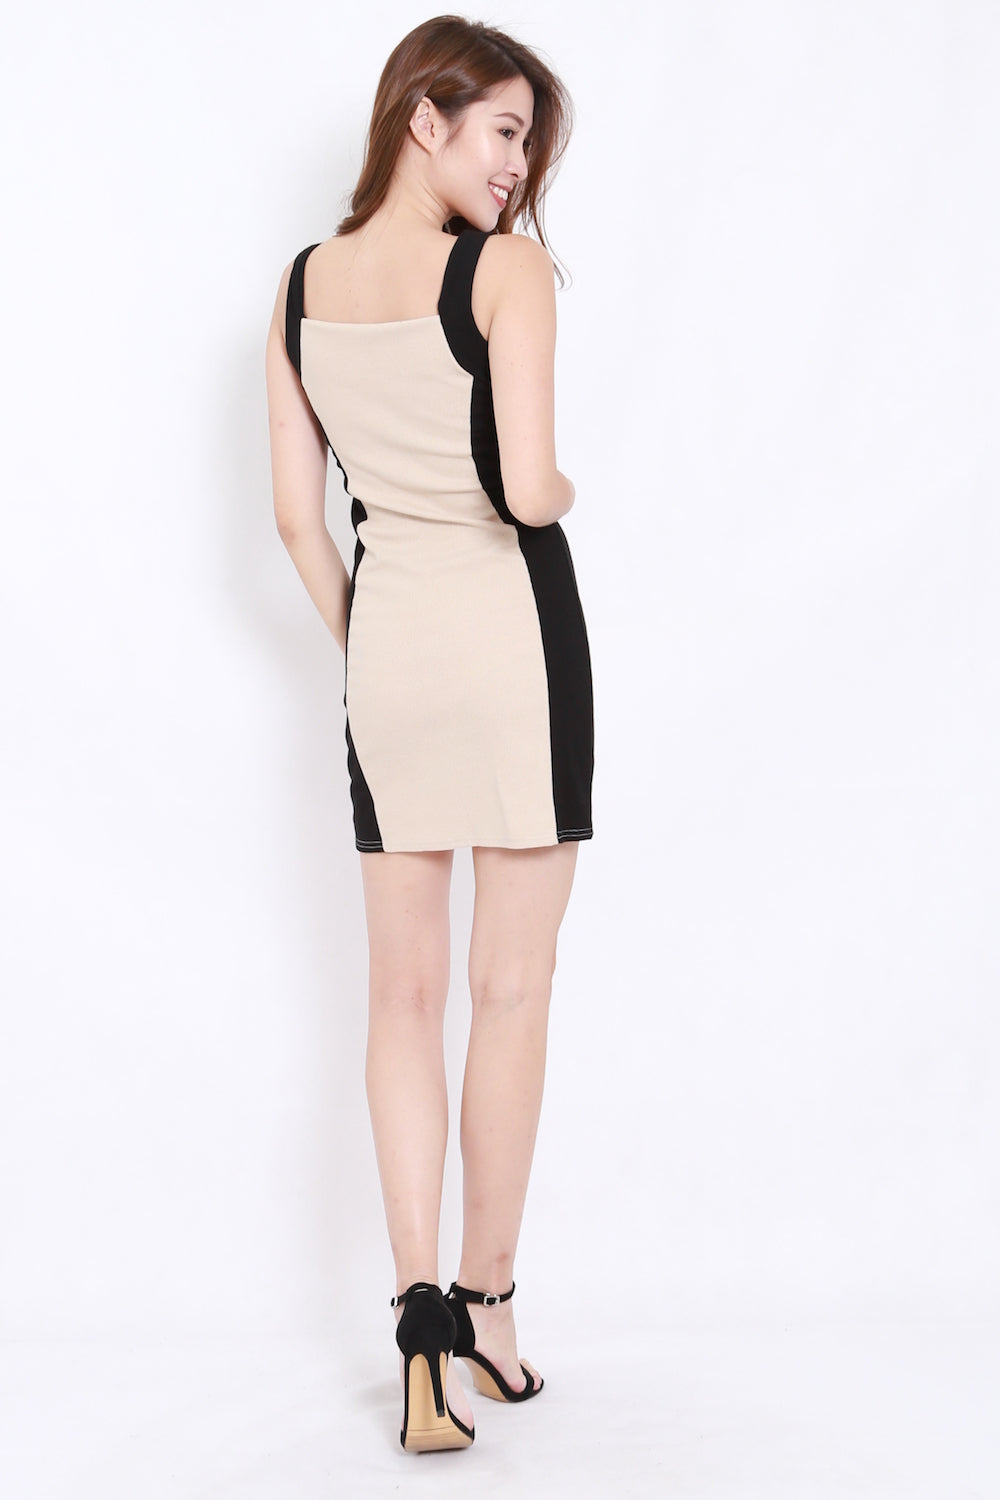 350bf1a5 Colour Block Ribbed Dress (Nude) – Carrislabelle